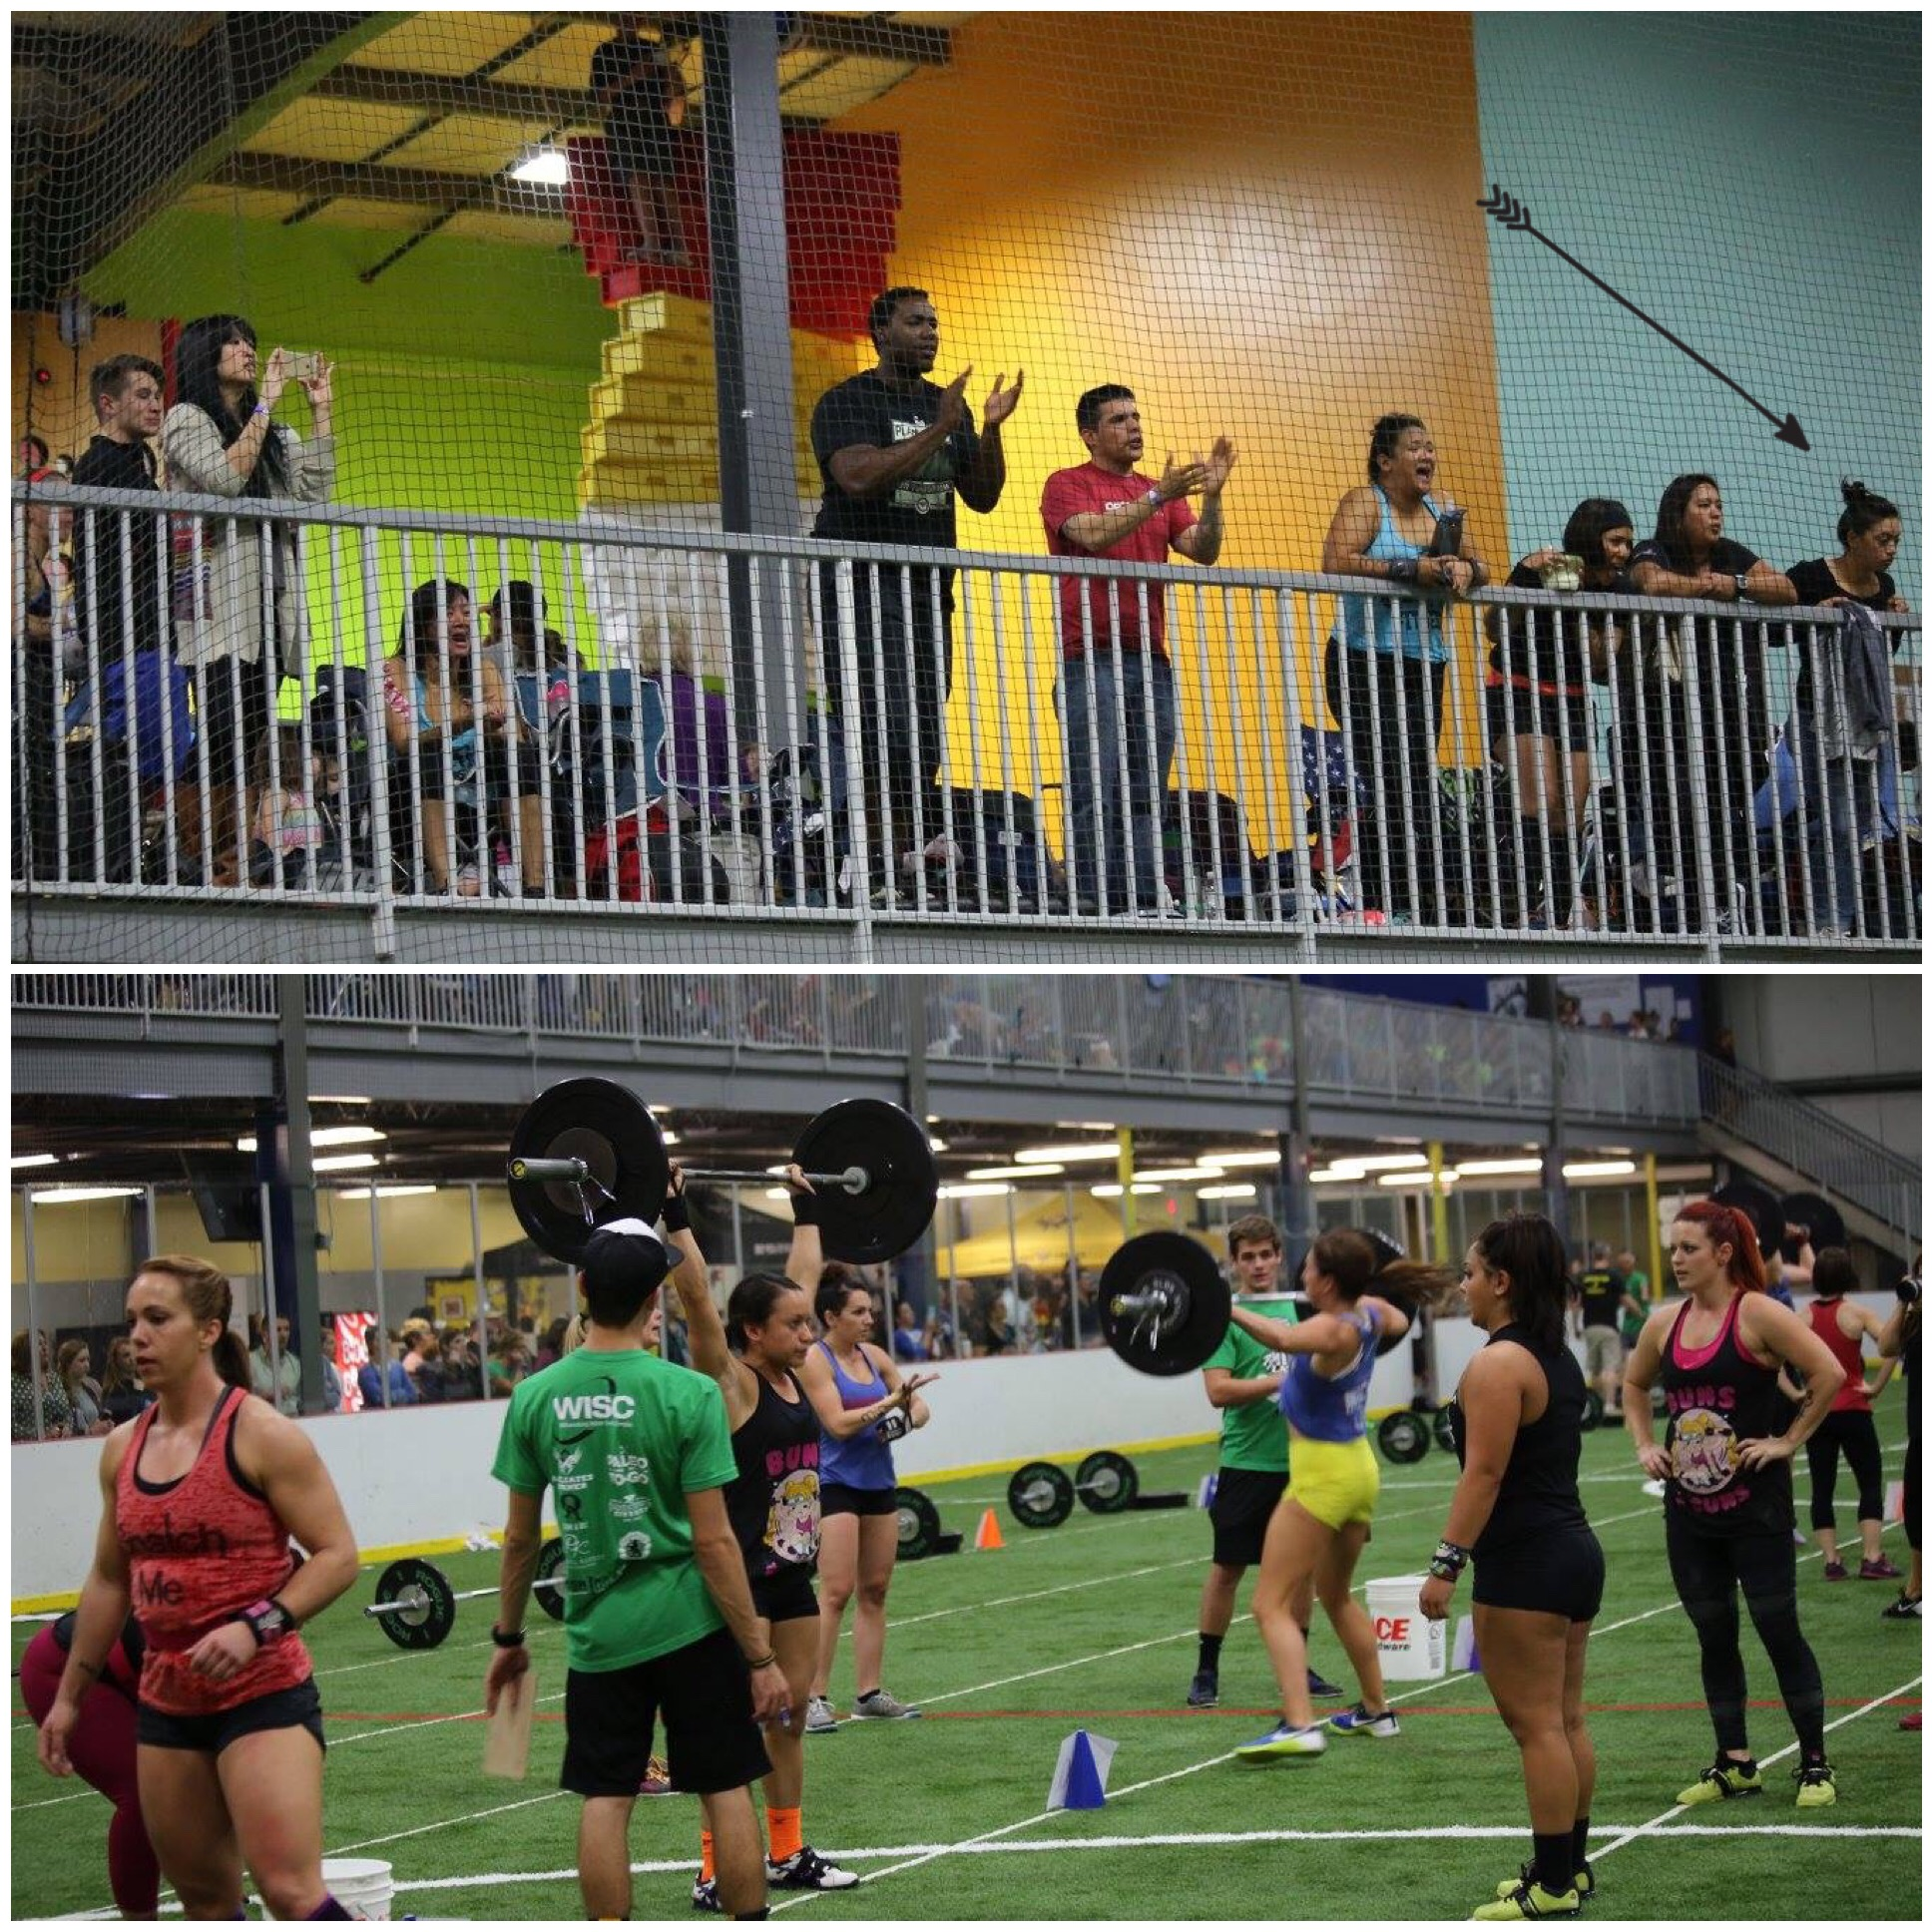 DBCF: KC watches CrossFit for the first time, April Bossons snatching/Gangs of the Mid-Atlantic 2015